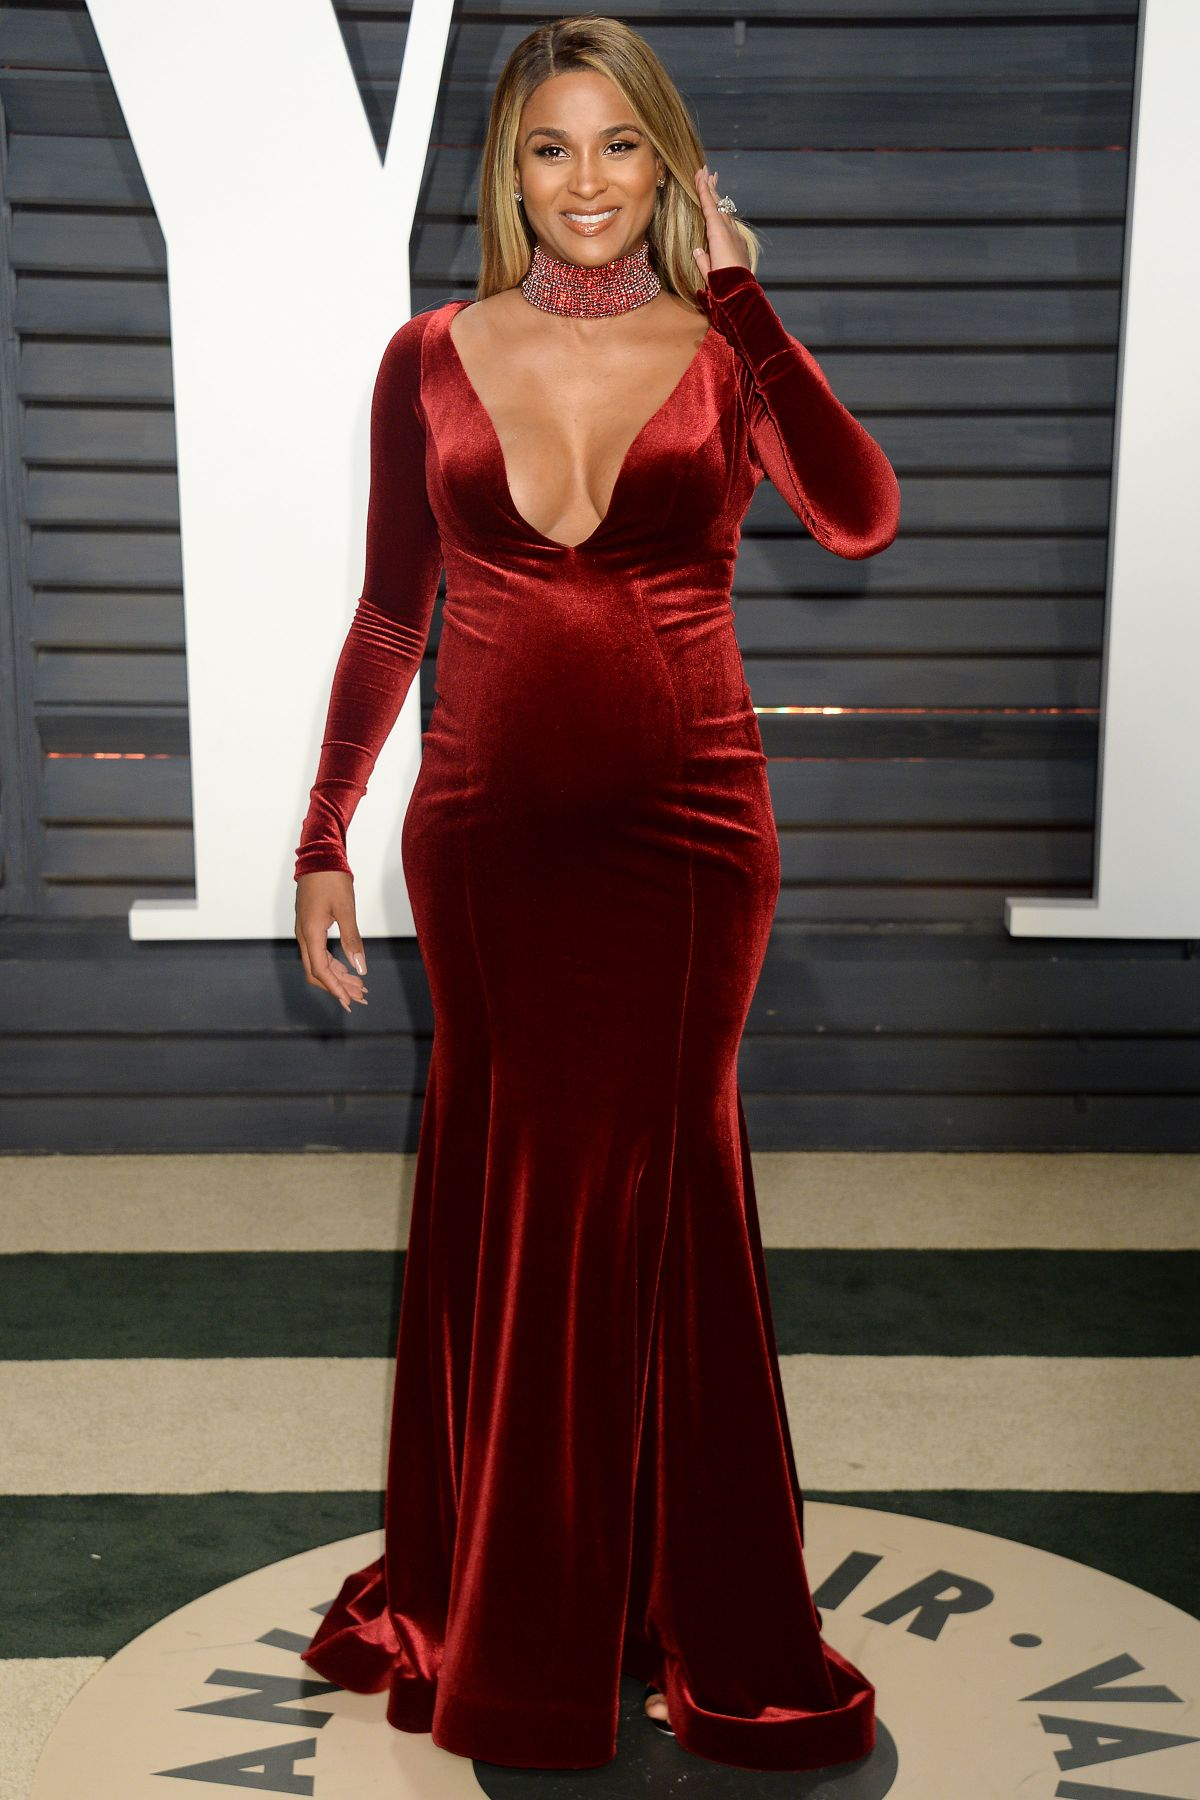 Pregnant Ciara At 2017 Vanity Fair Oscar Party In Beverly Hills 02 26 2017 Hawtcelebs